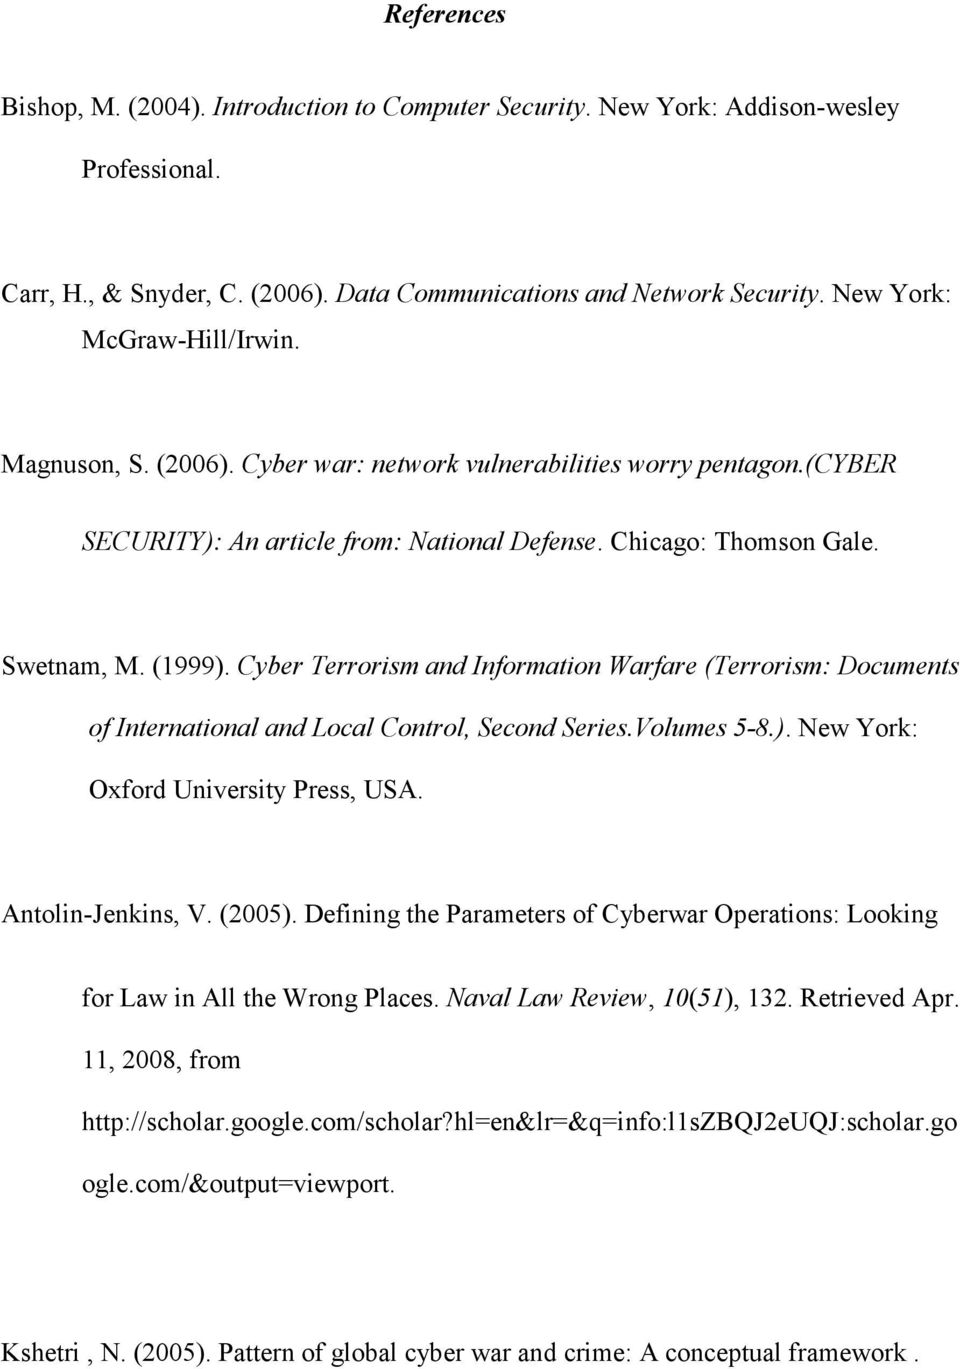 Cyber Terrorism and Information Warfare (Terrorism: Documents of International and Local Control, Second Series.Volumes 5-8.). New York: Oxford University Press, USA. Antolin-Jenkins, V. (2005).